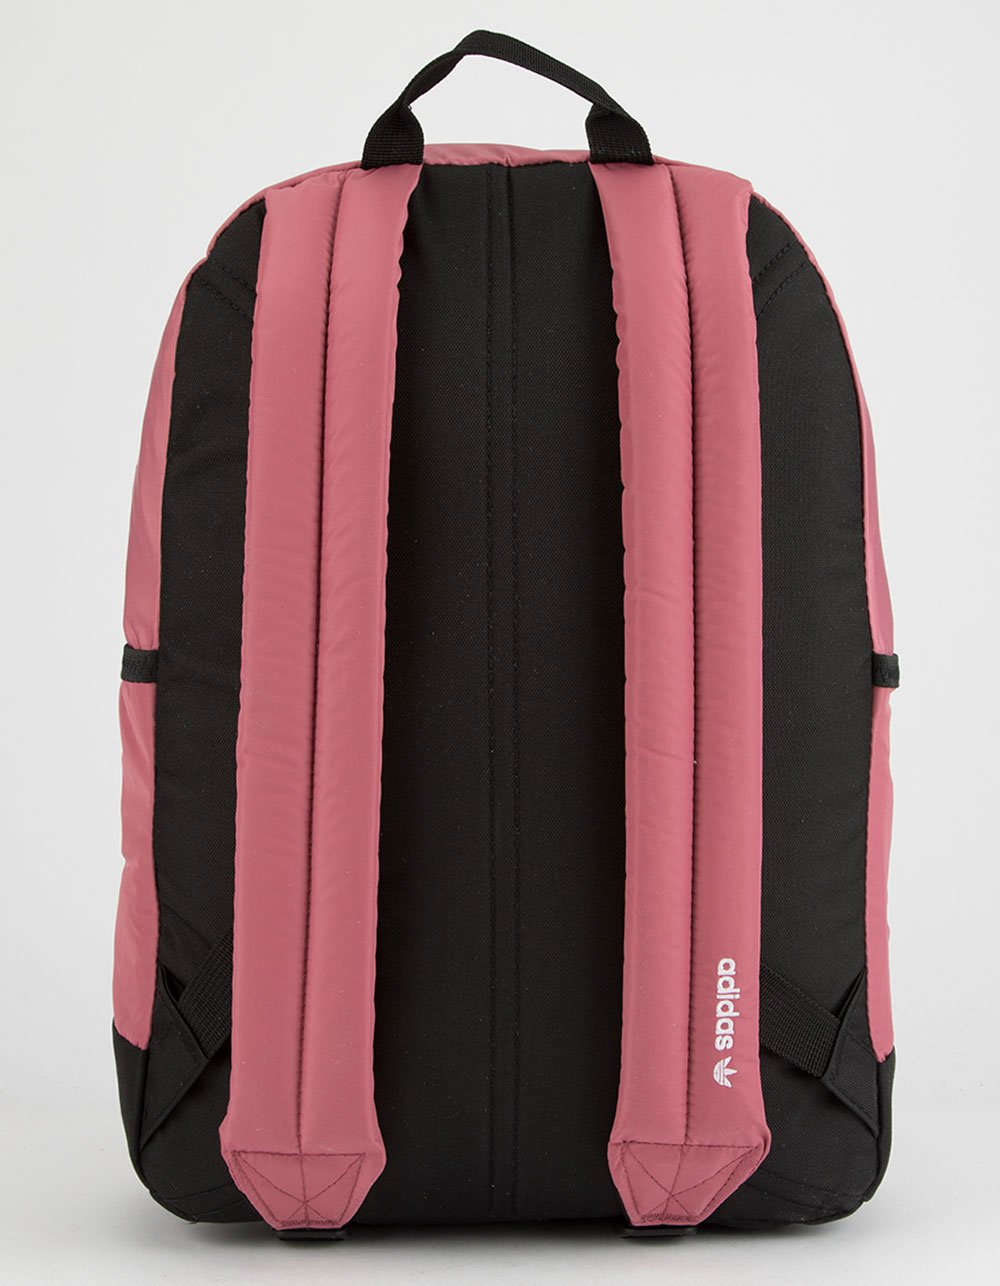 20dbffb81b96 Adidas Original National Pink Backpack- Fenix Toulouse Handball